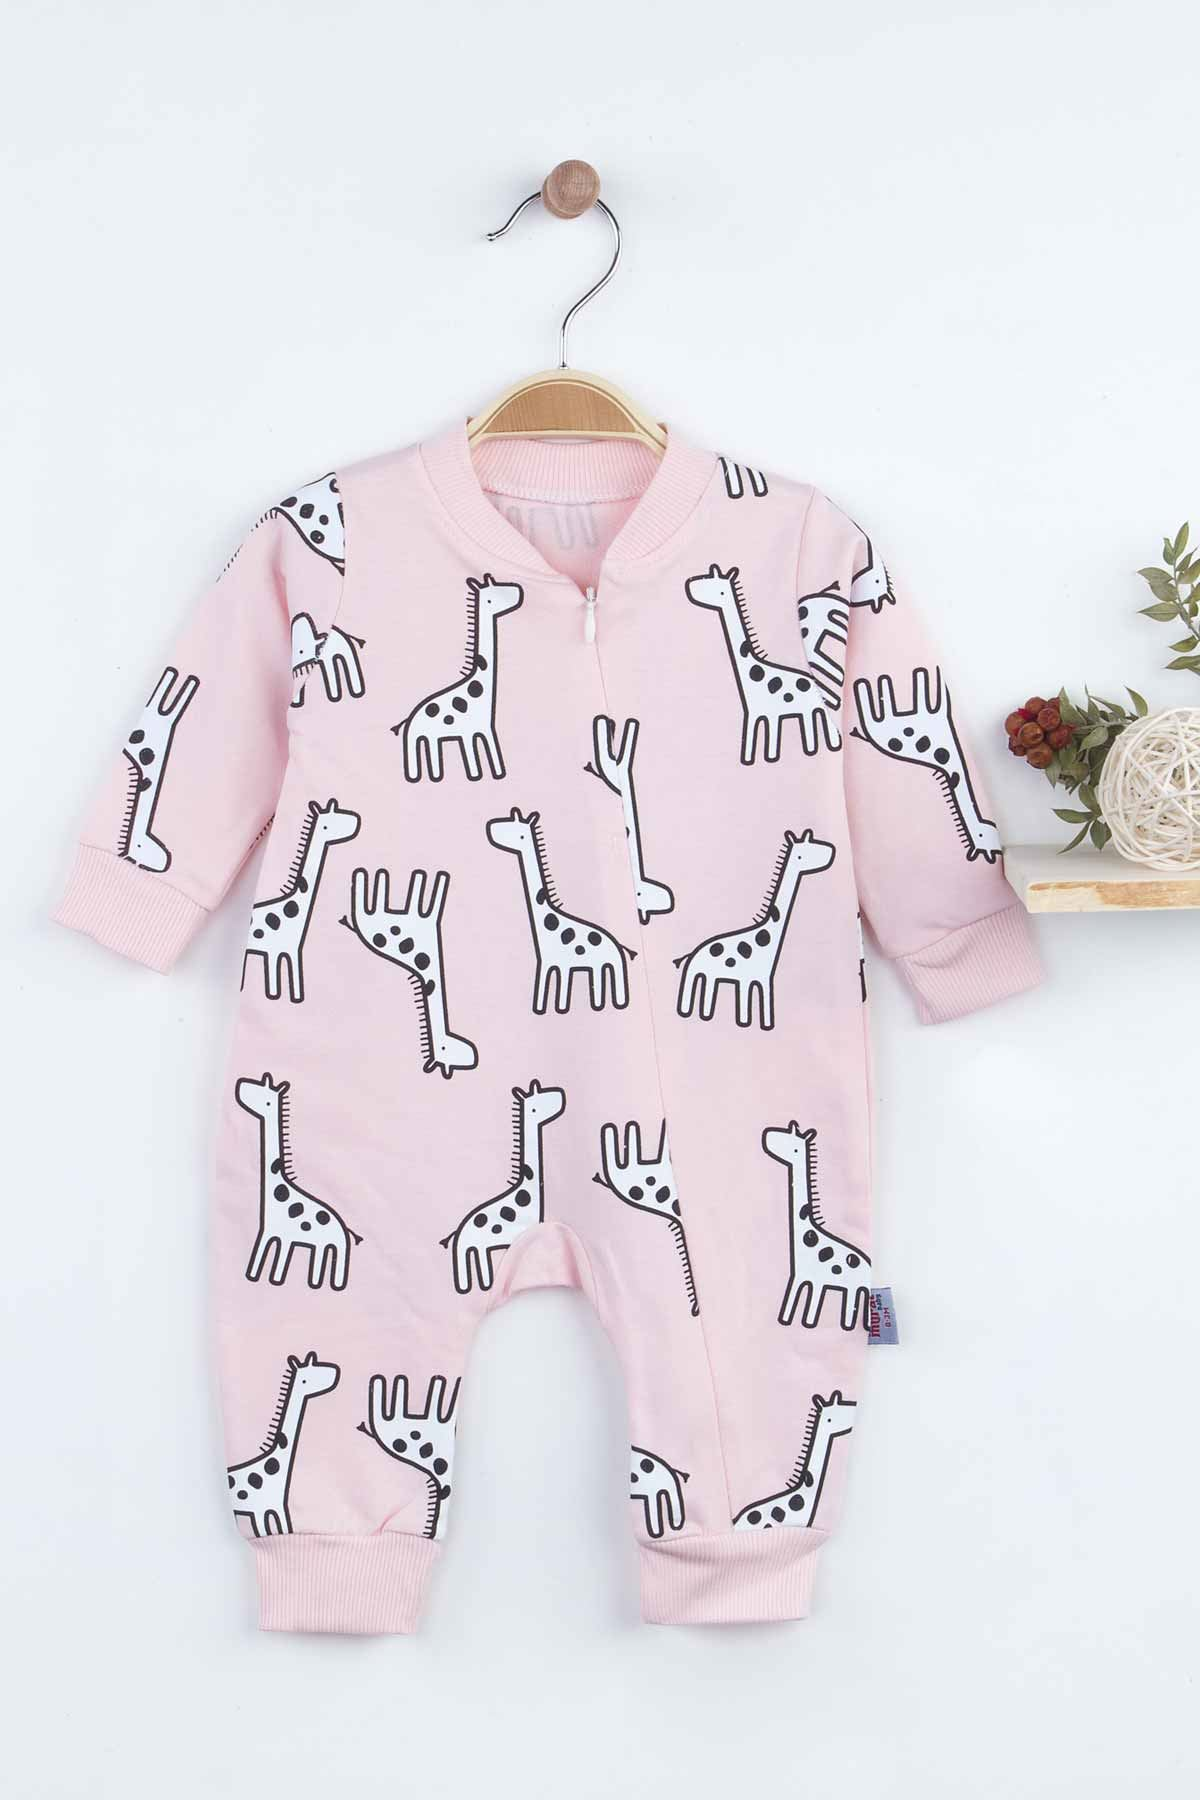 Pink Baby Girl Rompers Babies Clothes Set Outfit Cotton Comfortable Underwear 2021 New Season Girls Salopet Model